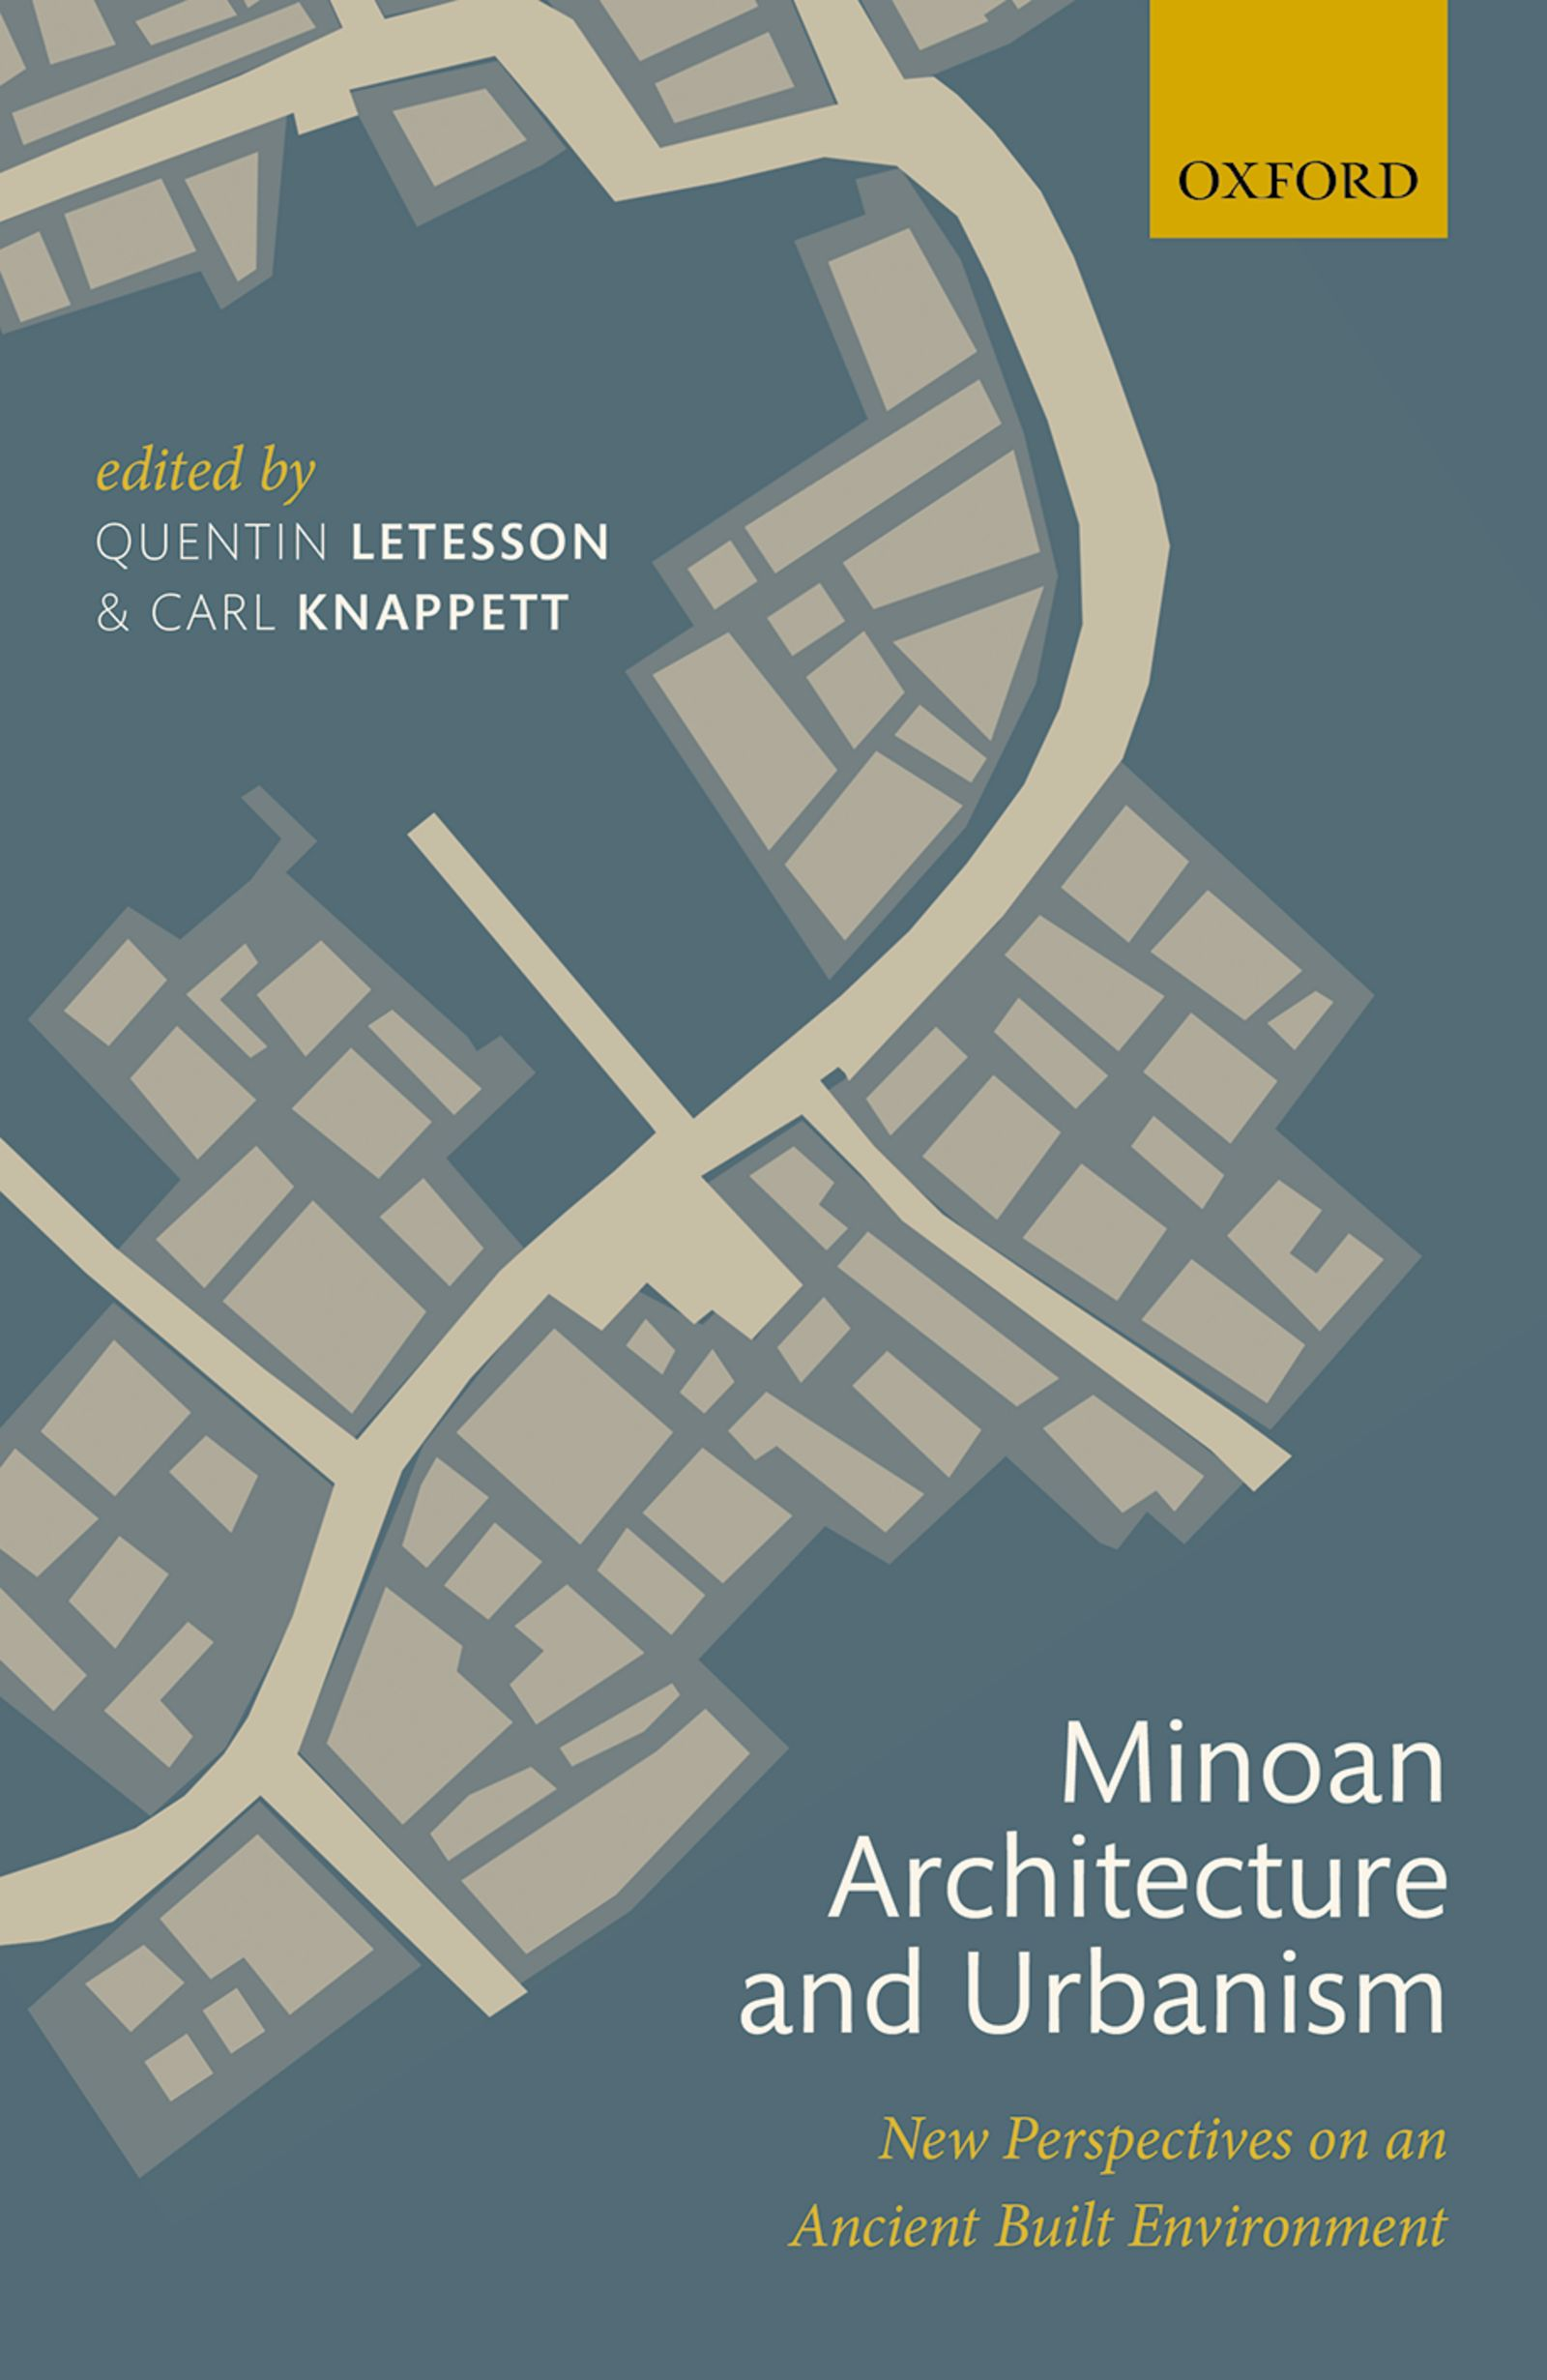 Minoan Architecture and Urbanism – New Perspectives on an Ancient Built Environment - Oxford Scholarship Online